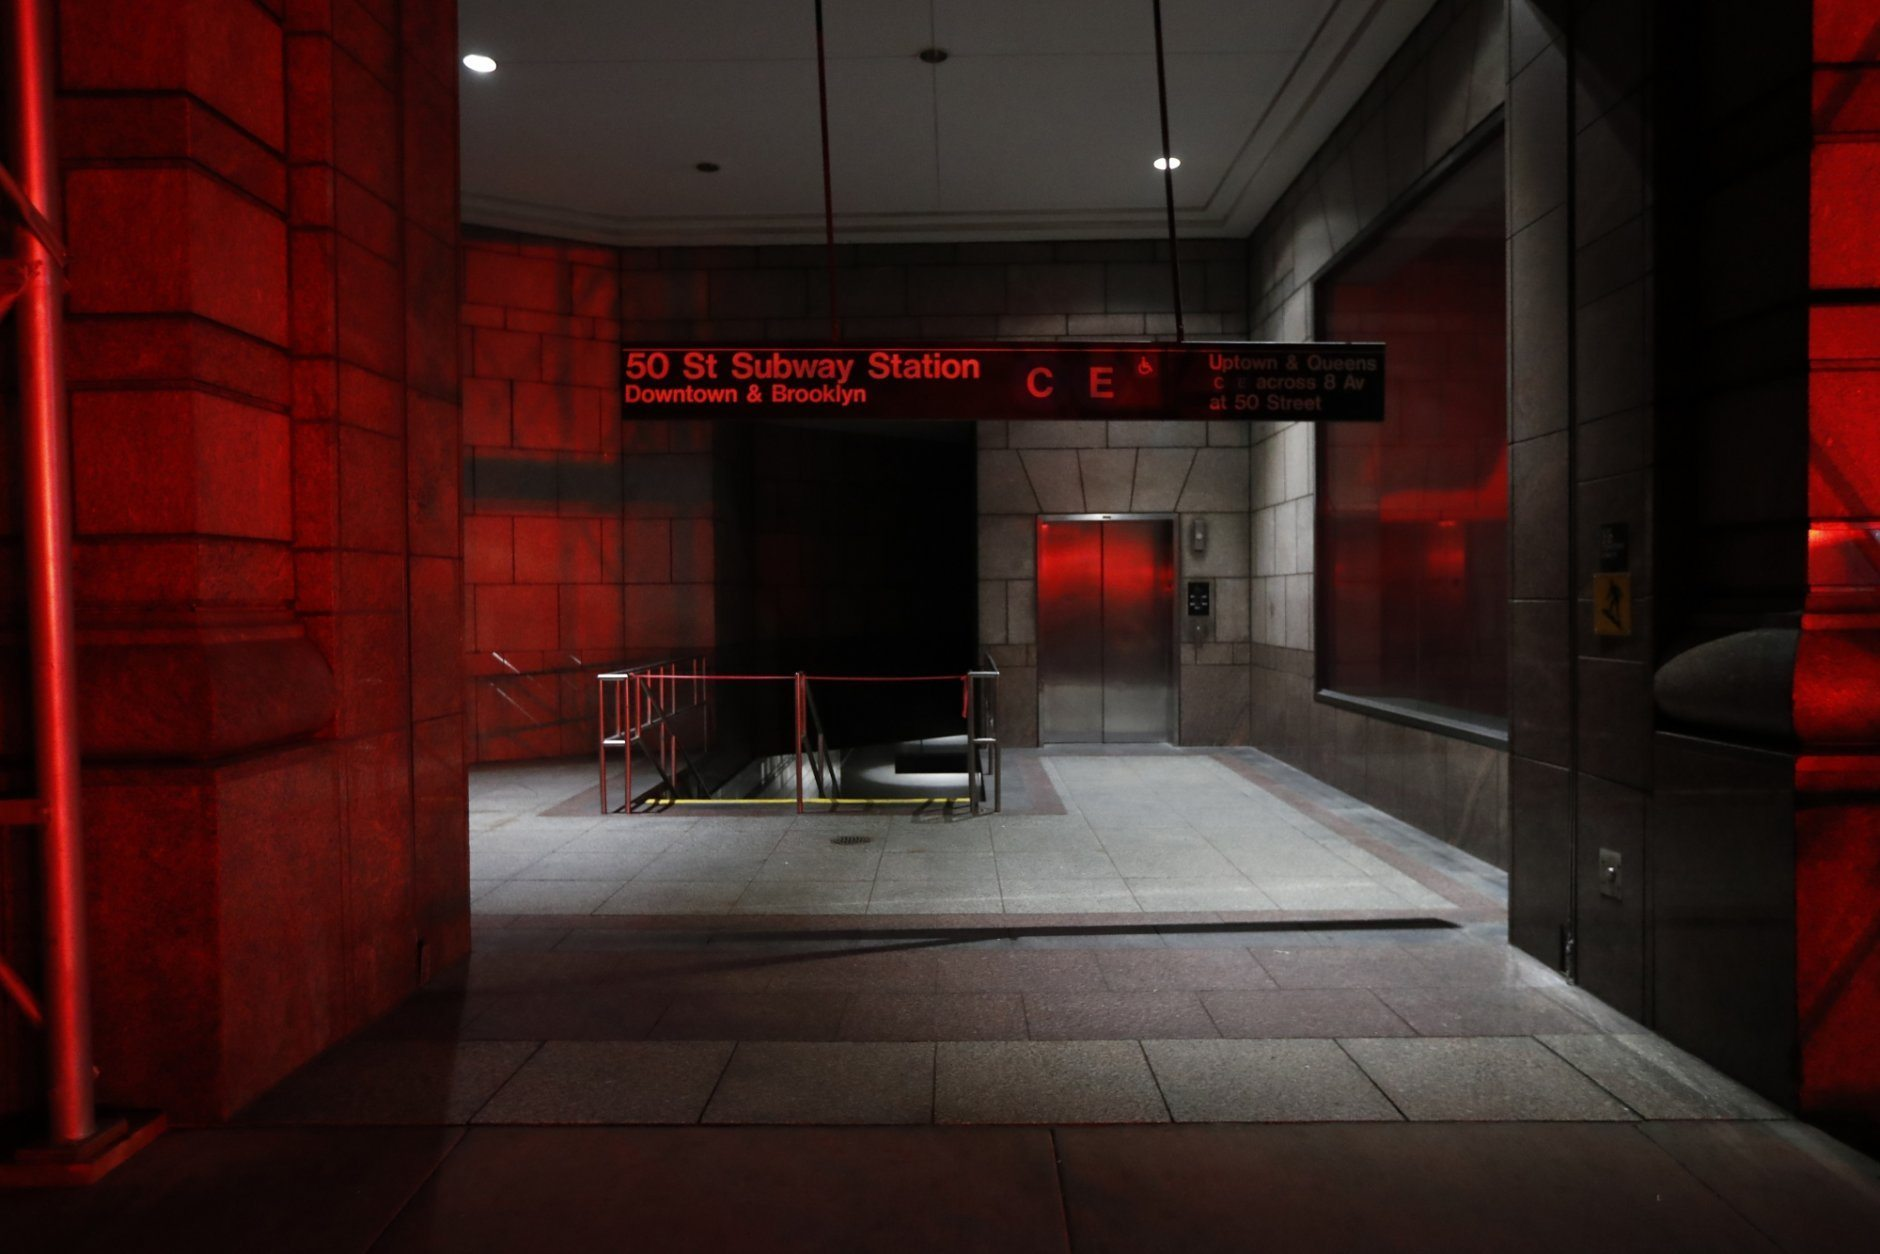 An area leading to the C and E trains at the 50th Street Subway Station is dimly lit during a power outage, Saturday, July 13, 2019, in New York. Authorities were scrambling to restore electricity to Manhattan following a power outage that knocked out Times Square's towering electronic screens and darkened marquees in the theater district and left businesses without electricity, elevators stuck and subway cars stalled. (AP Photo/Michael Owens)